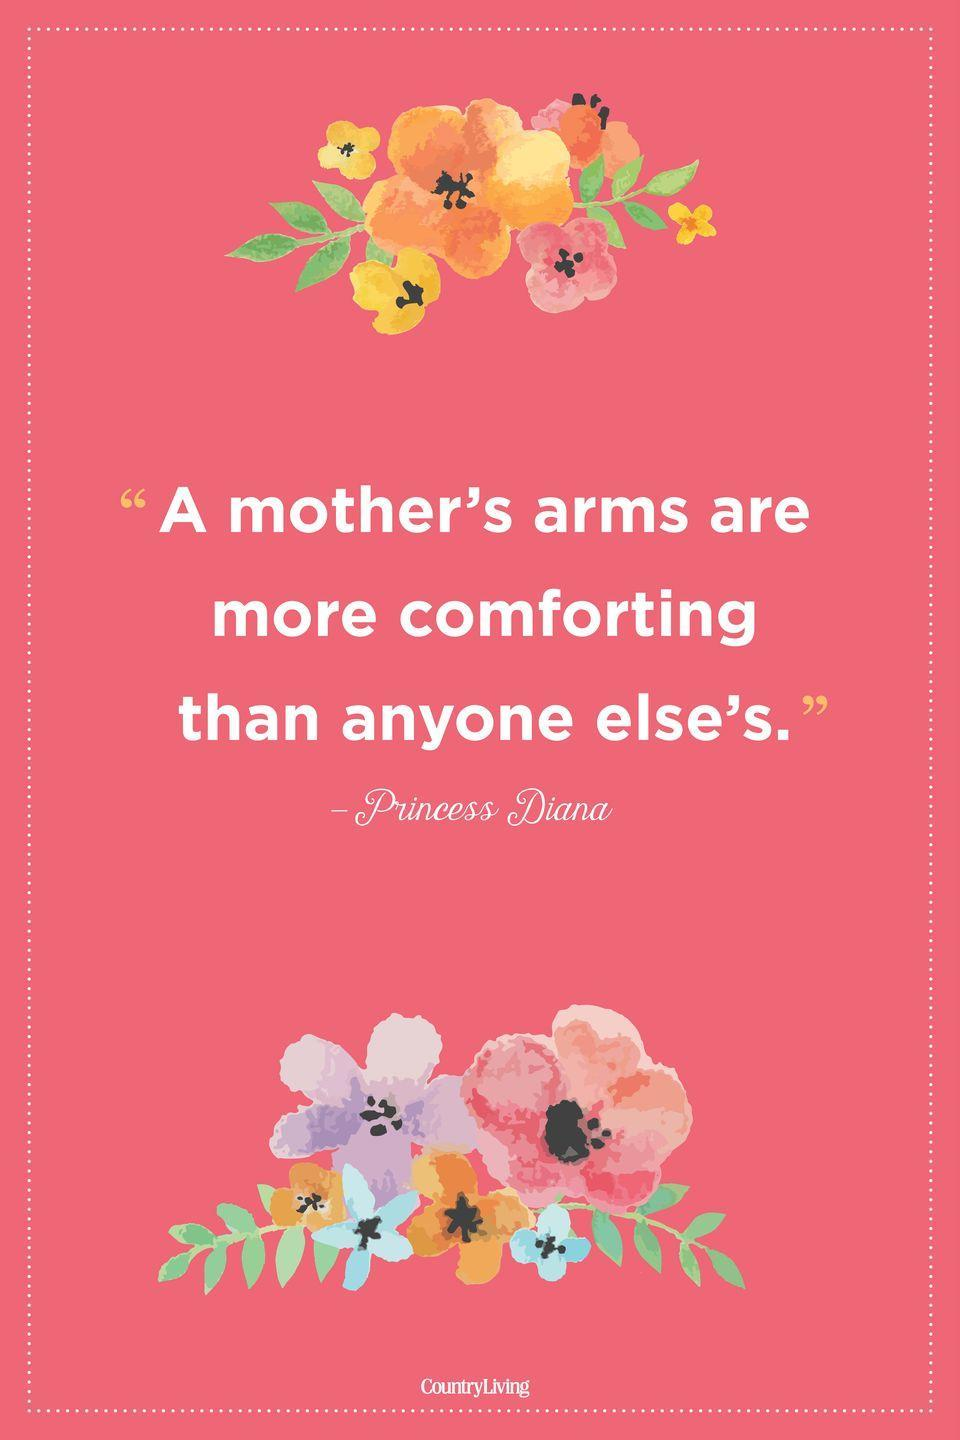 "<p>""A mother's arms are more comforting than anyone else's.""</p>"